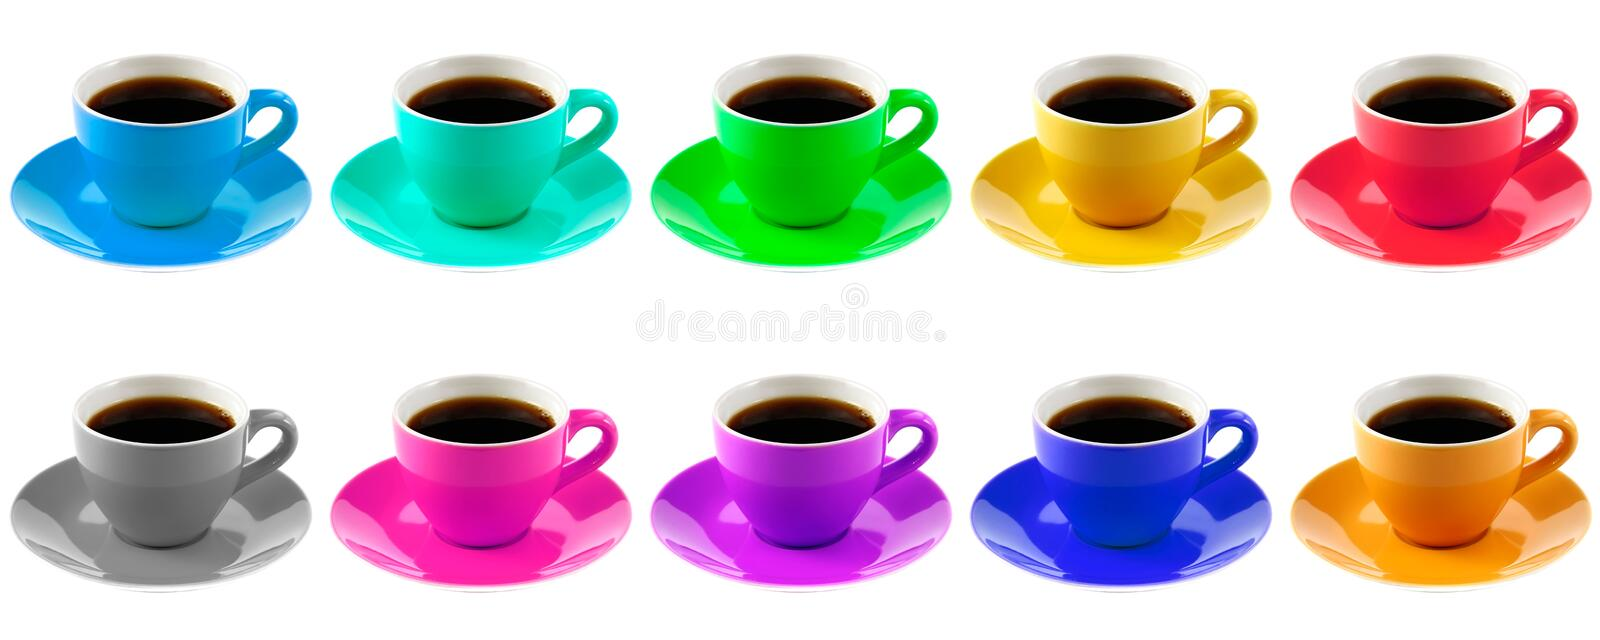 Download Cups of coffee stock image. Image of drink, grey, pink - 11555793